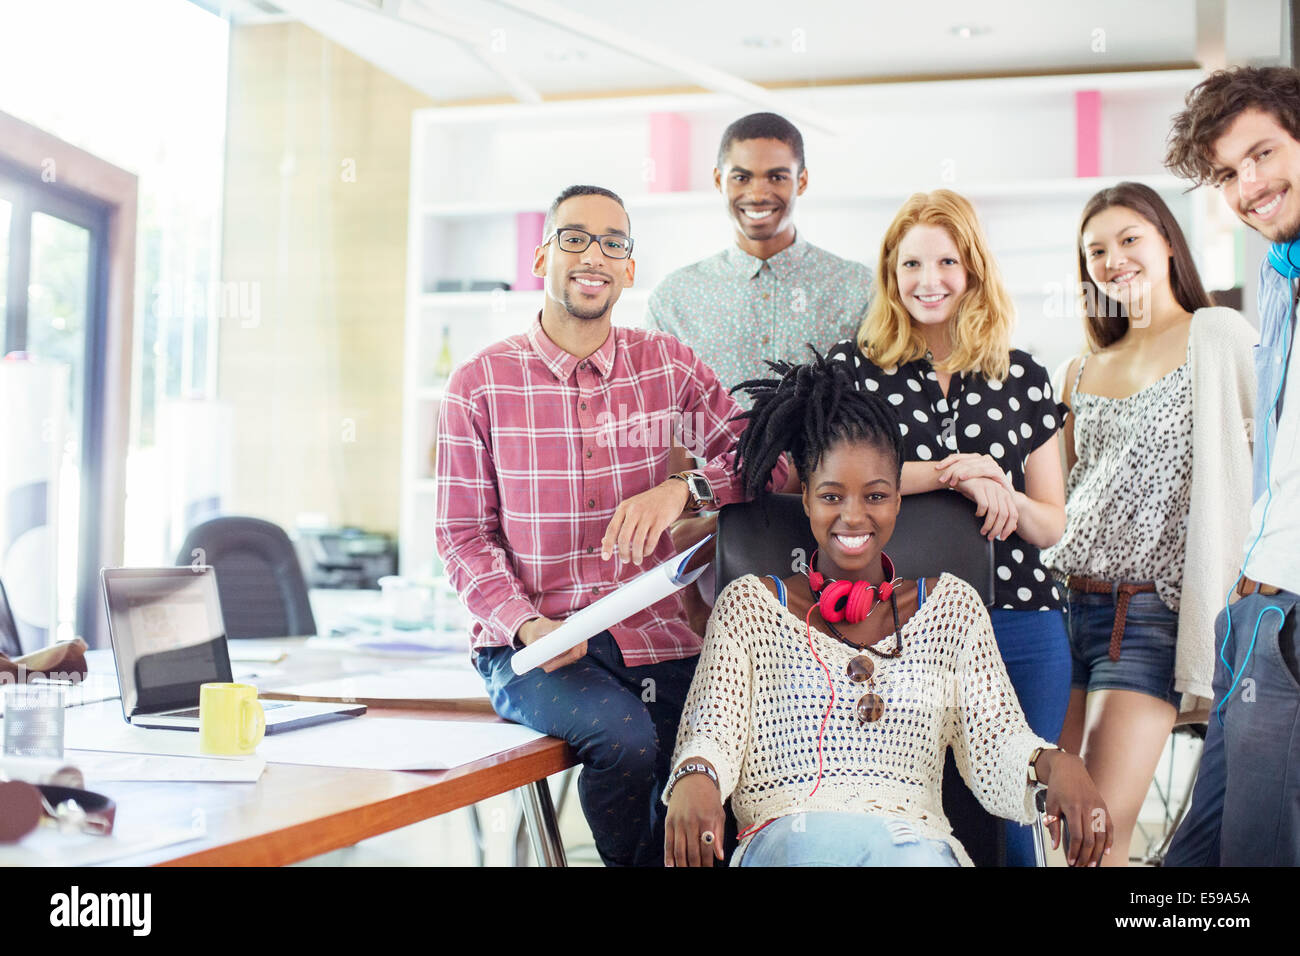 People smiling together in office Photo Stock